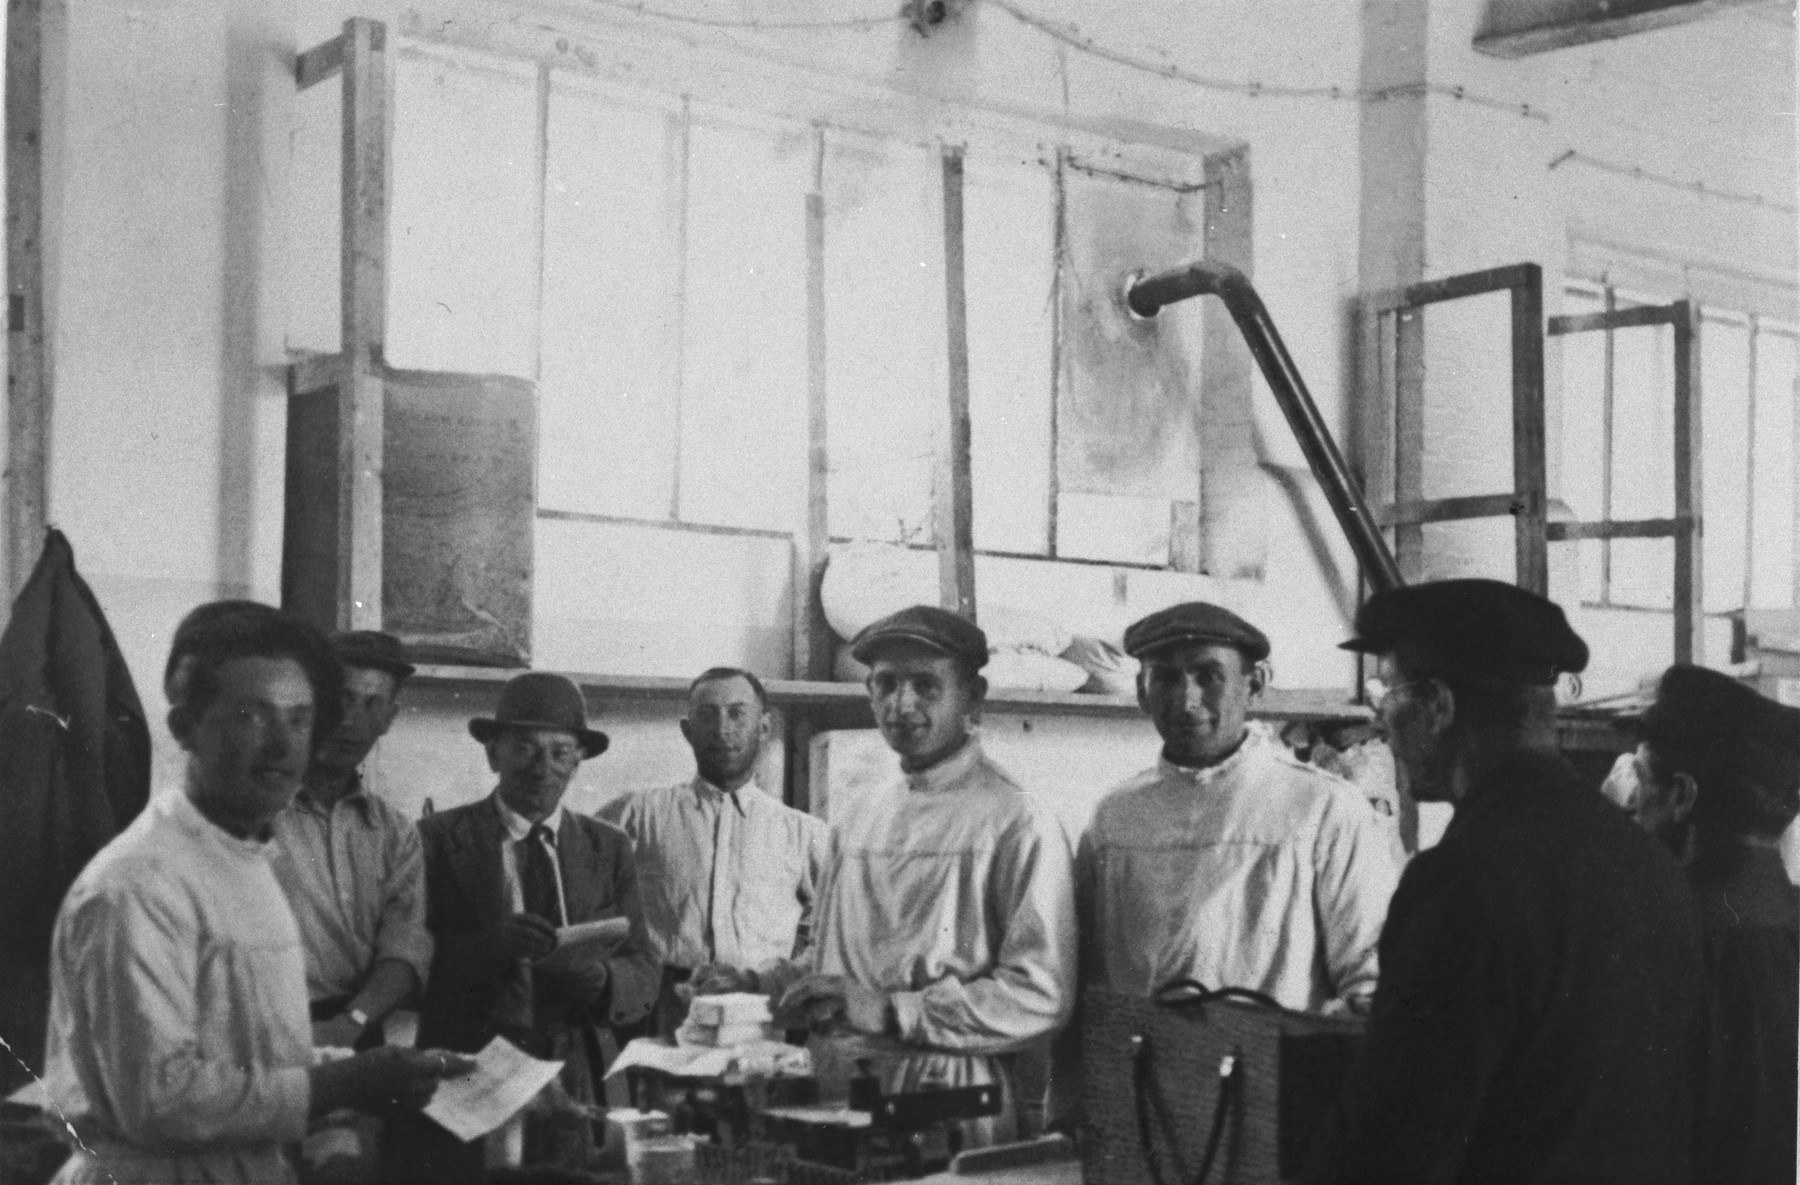 DPs working in food distribution at the Ziegenhain displaced persons' camp pose in a warehouse.  Second from the right is Shlomo Kleimann.